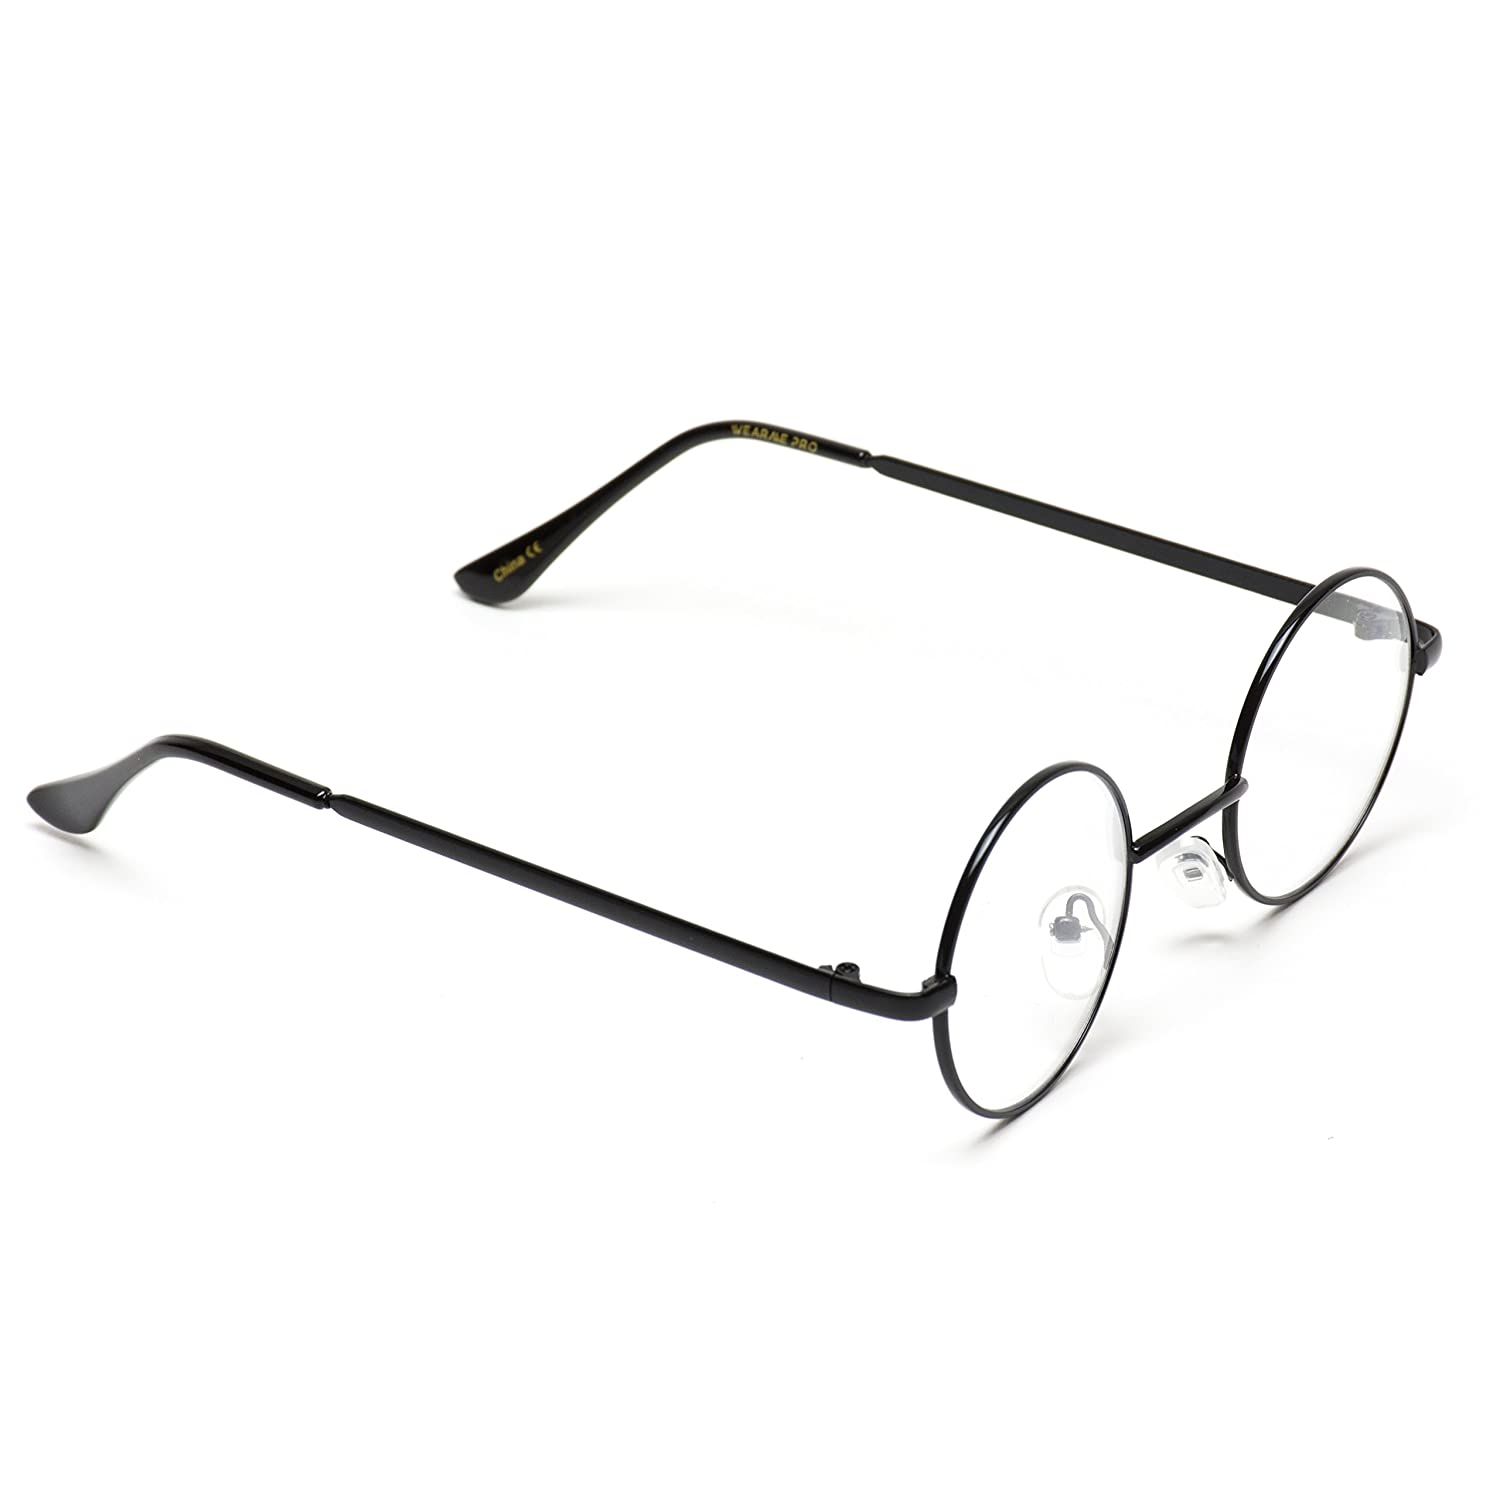 91402fdc8 Amazon.com: Round Clear Metal Frame Glasses: Clothing